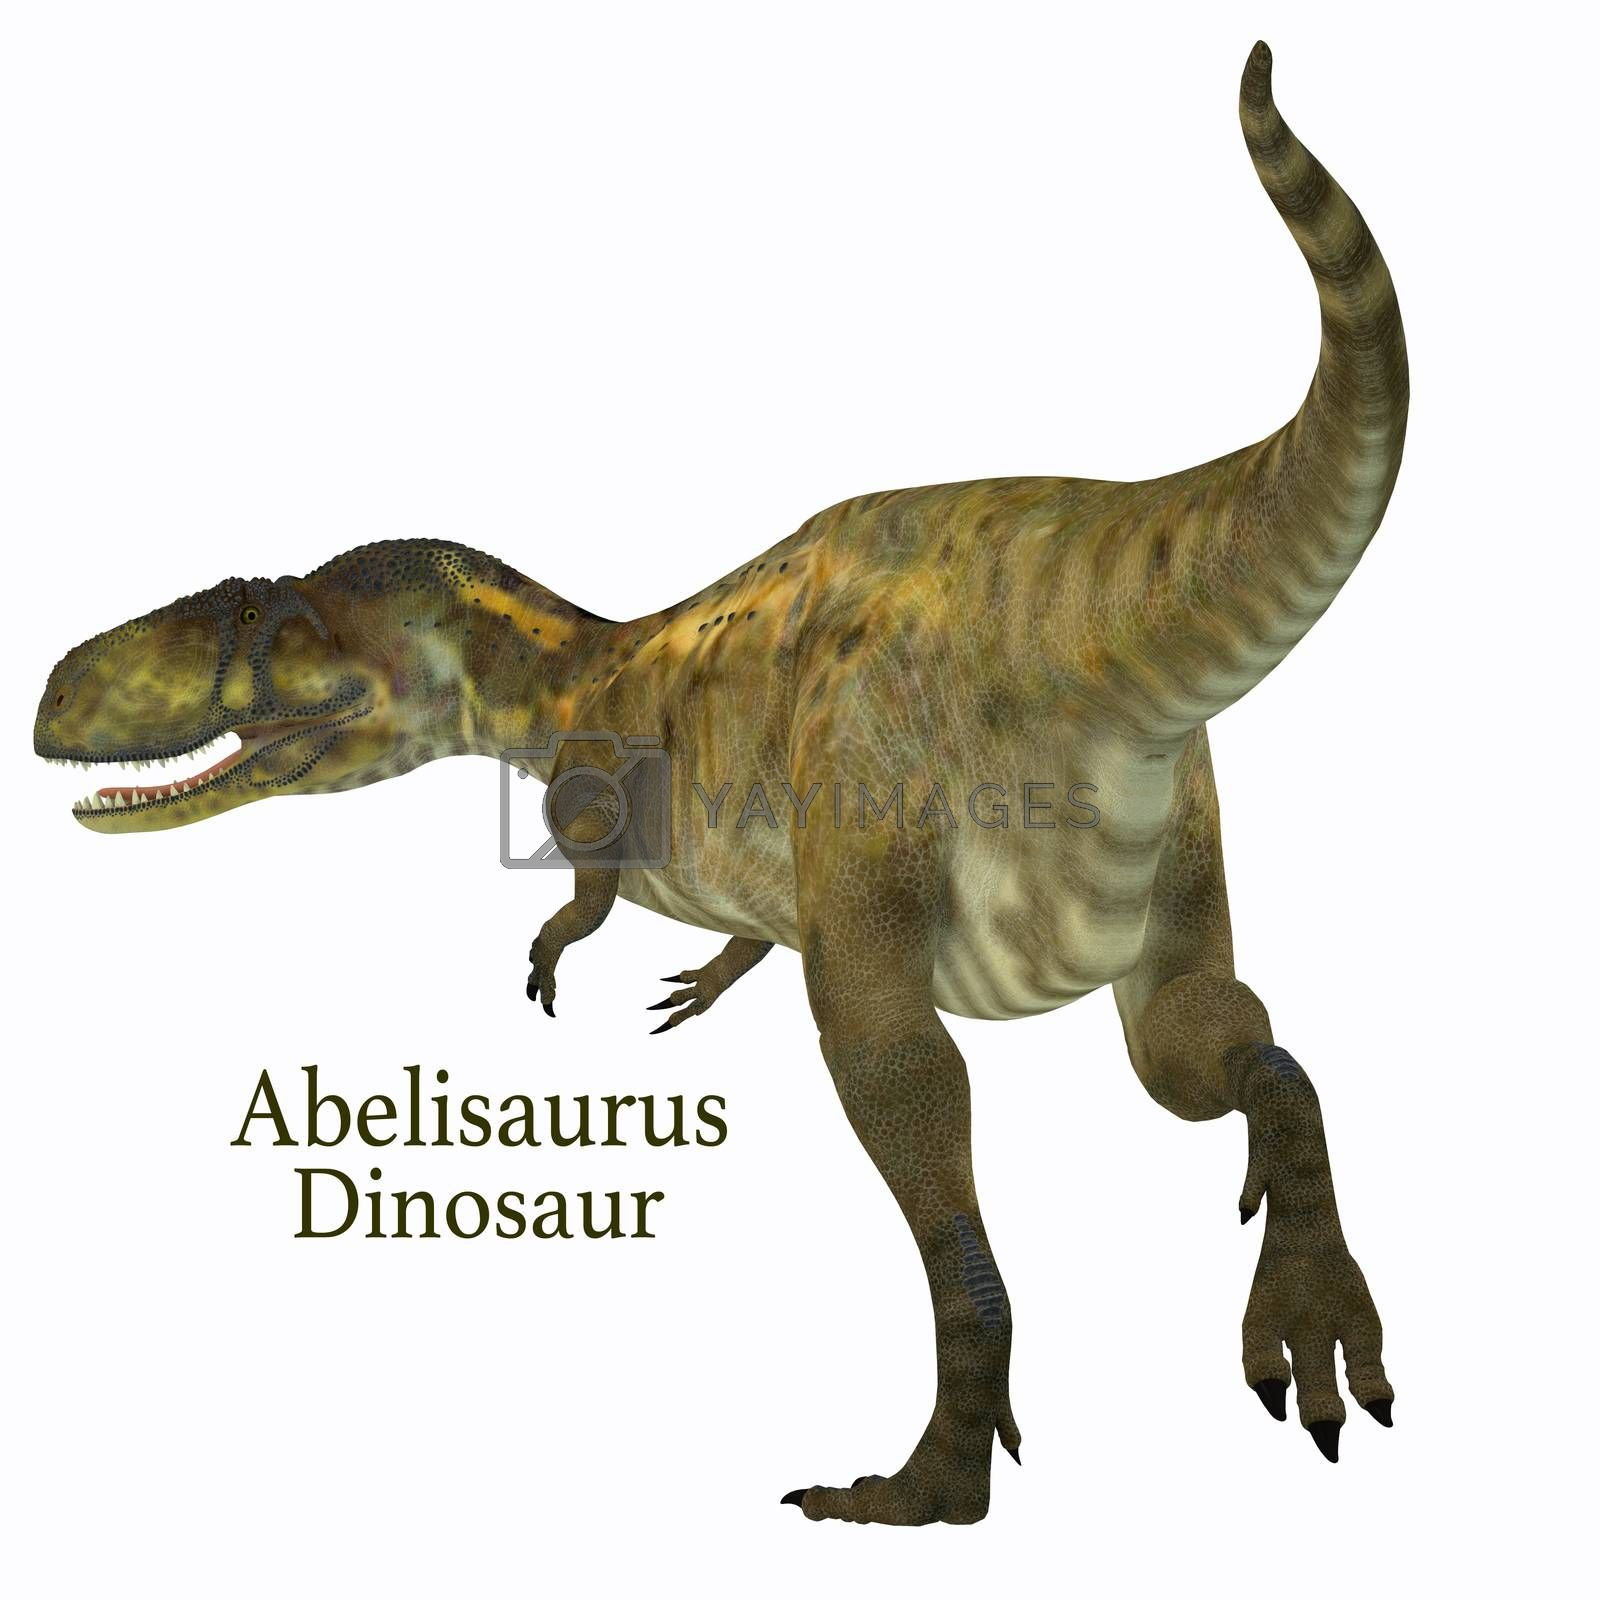 Abelisaurus was a carnivorous theropod dinosaur that lived in Argentina in the Cretaceous Period.